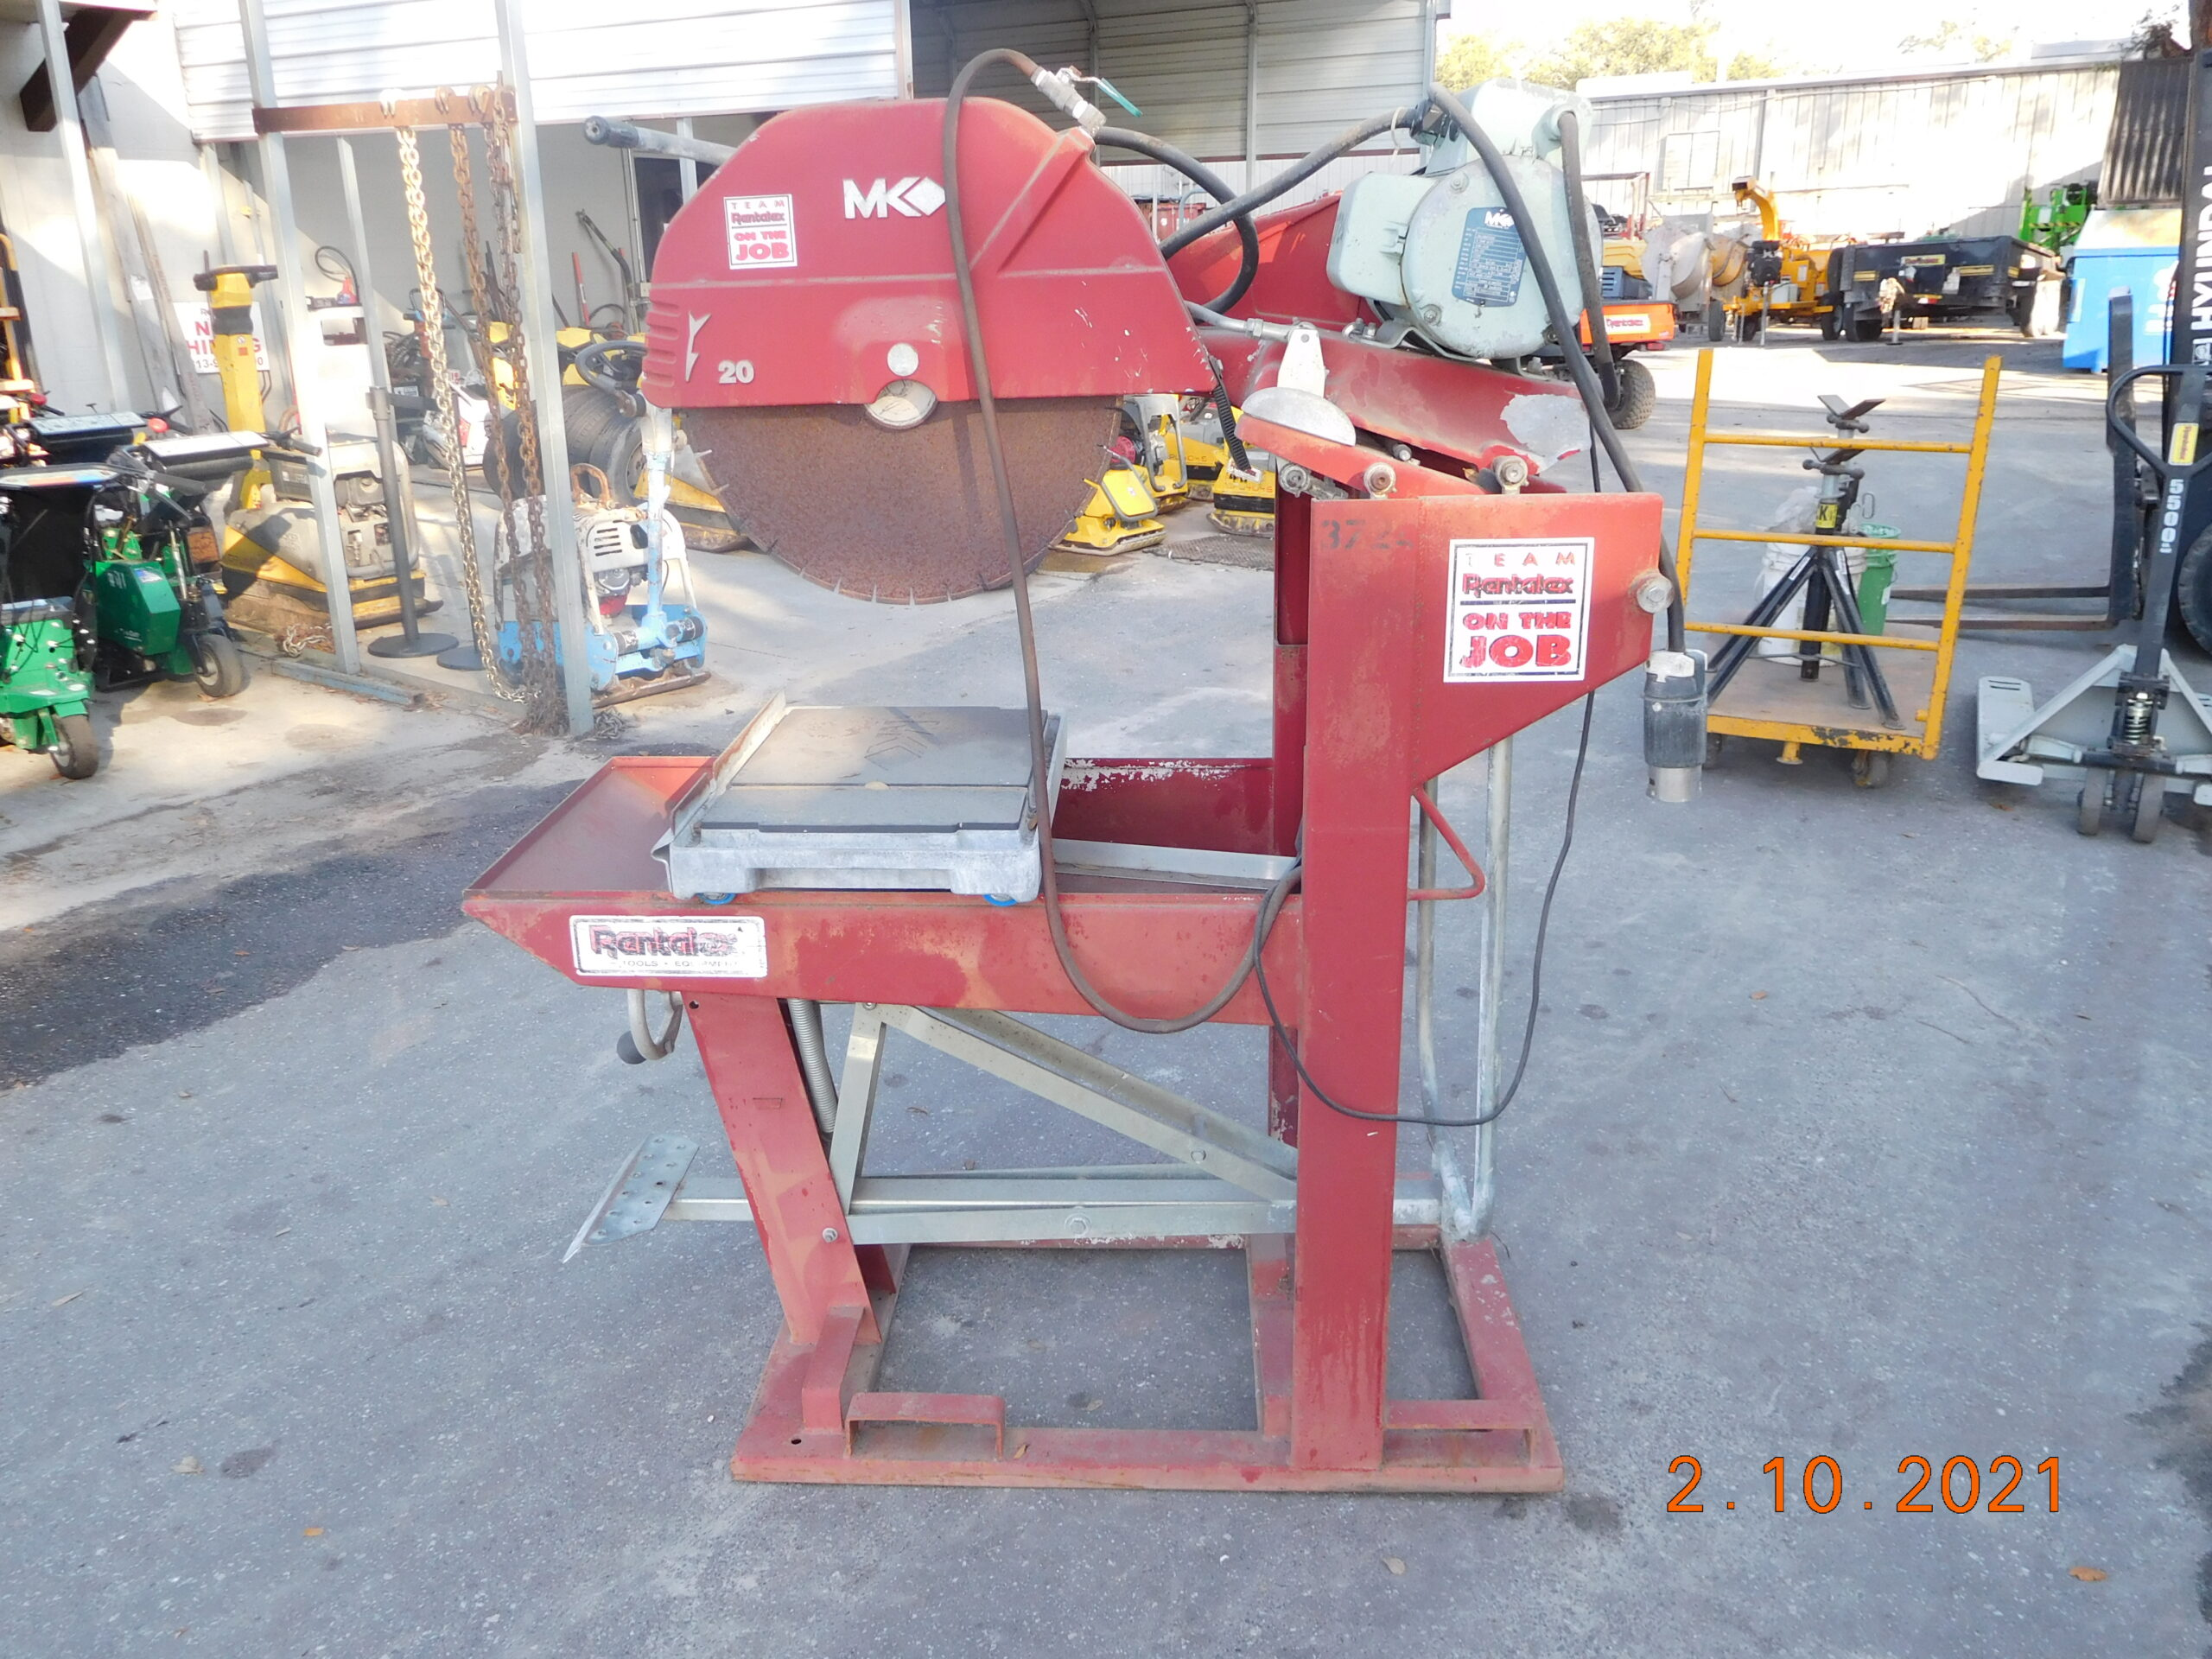 MK Model MK-5005S Table Saw For Sale